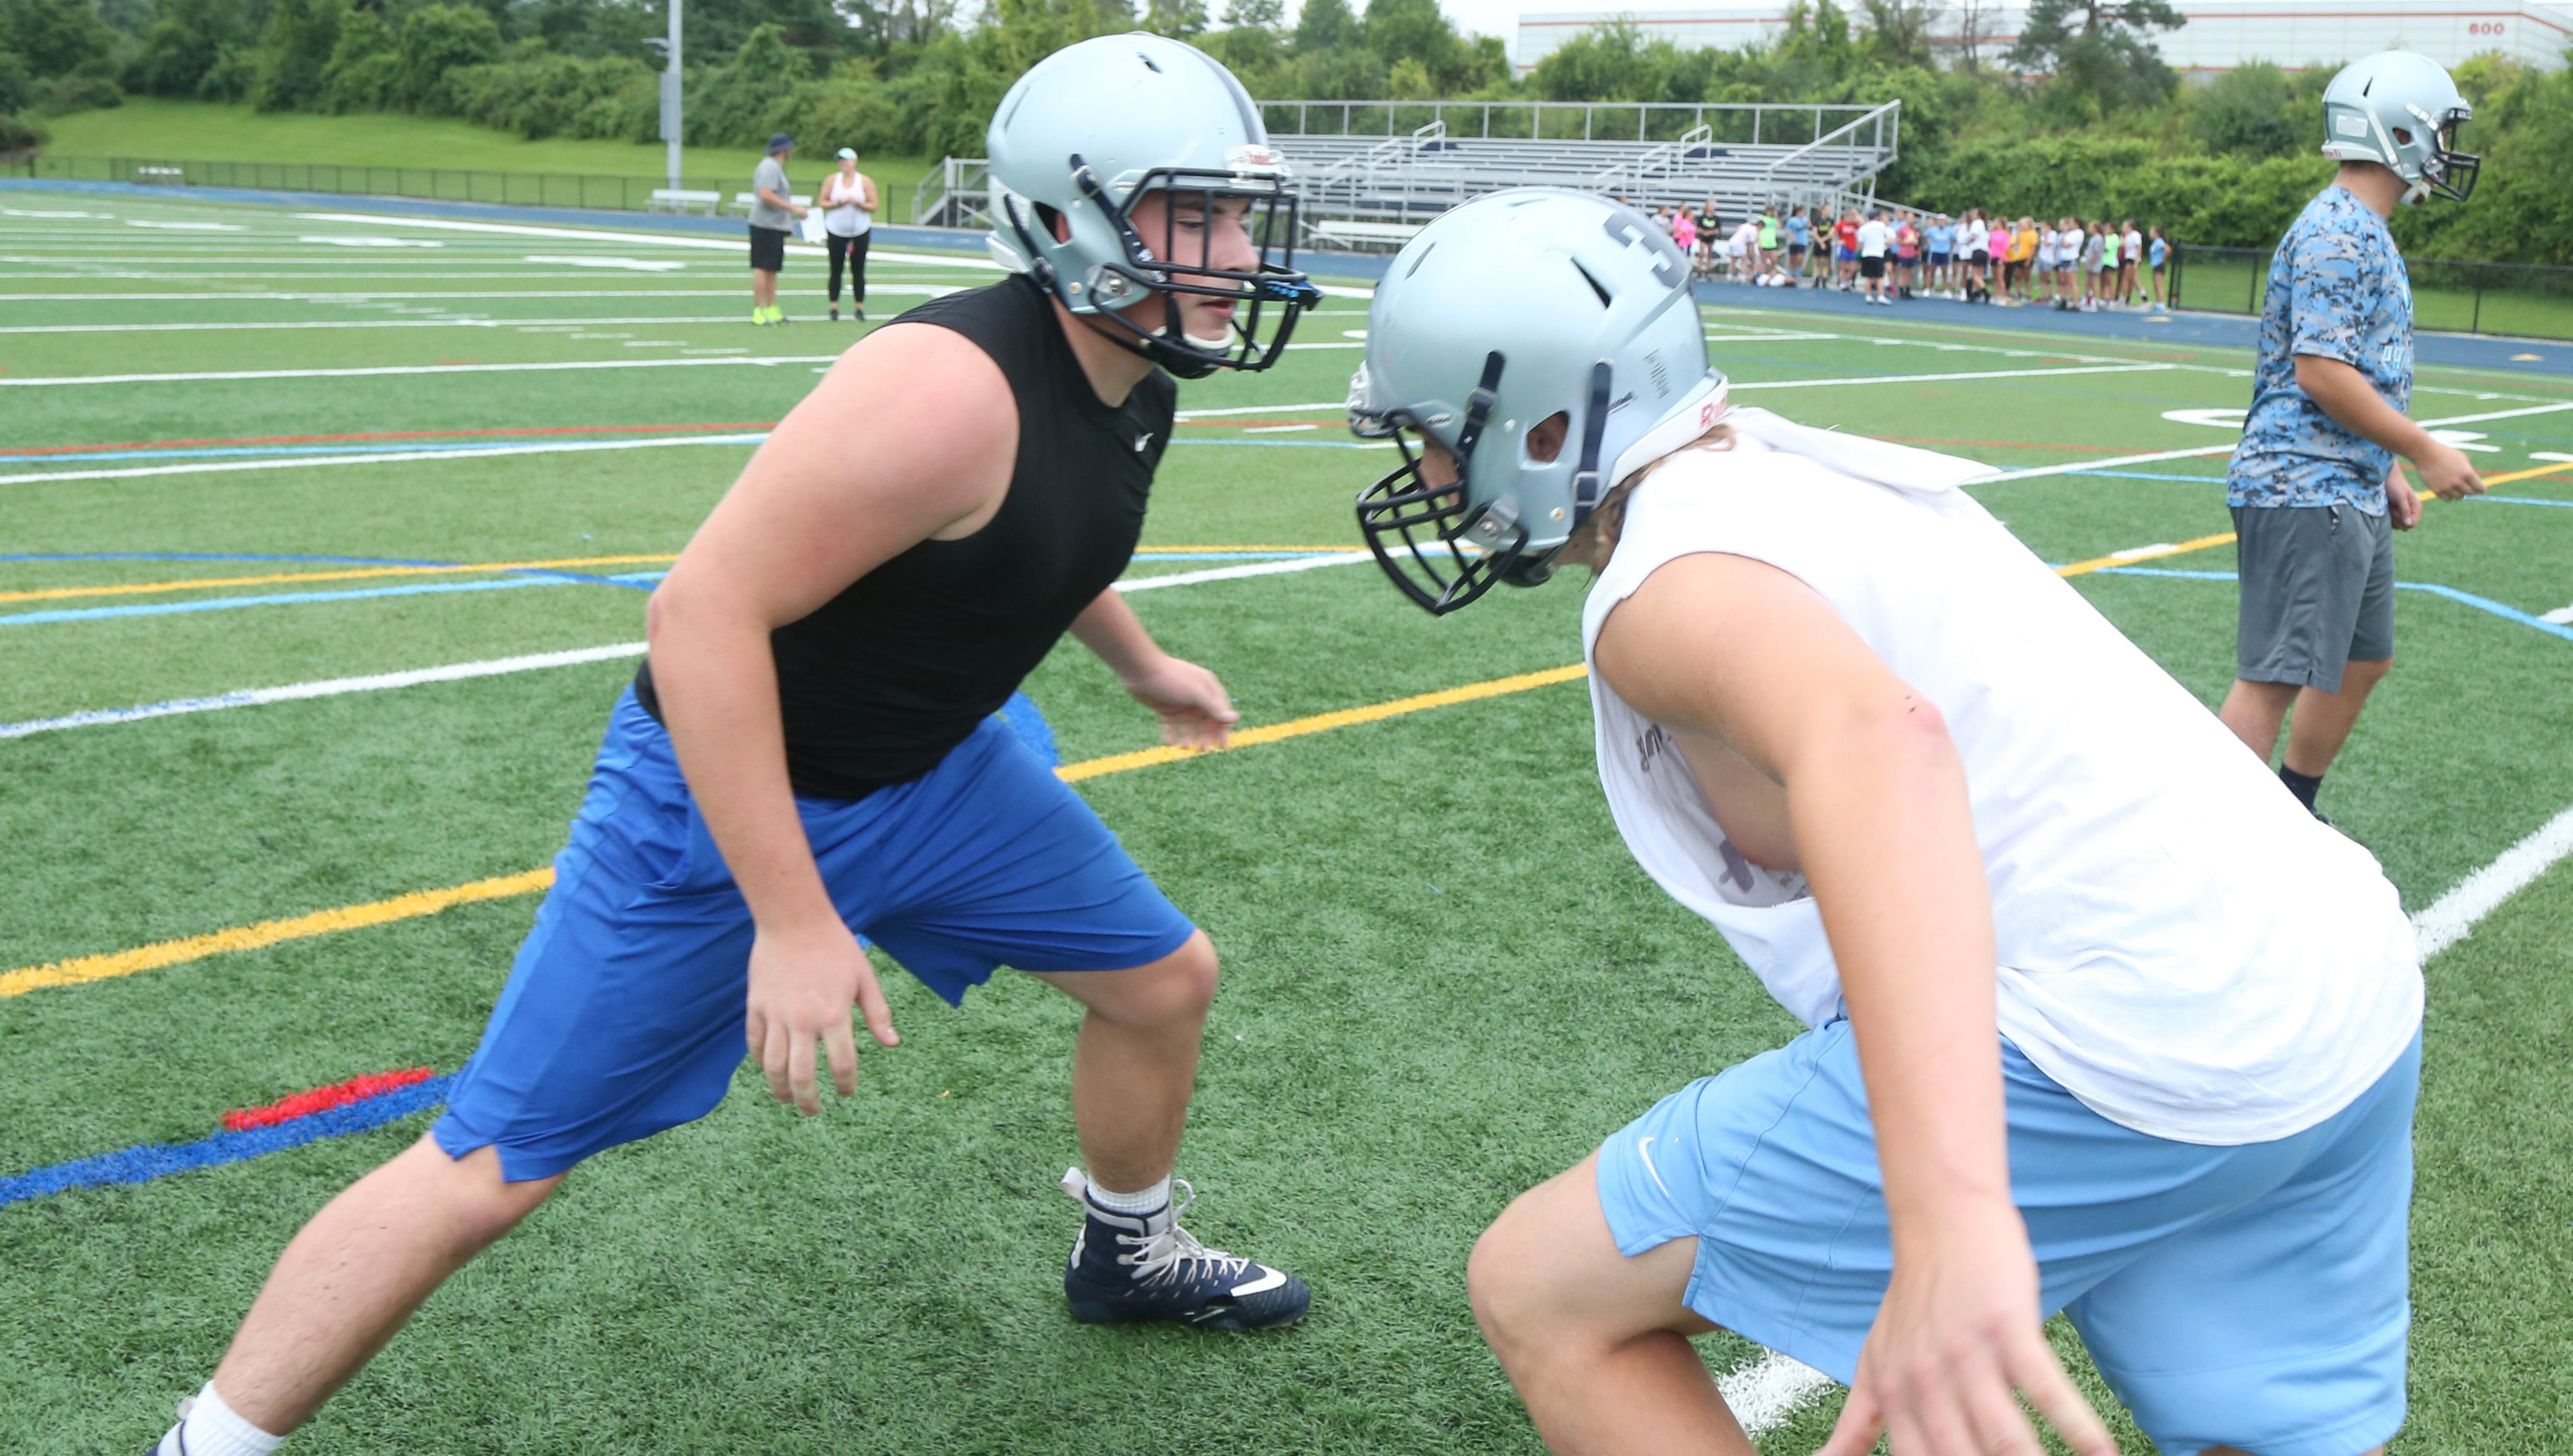 John Jay football linemen, from left, Patrick Whelan and Tommy Cavallo practice tackling during a preseason practice on August 13, 2018.